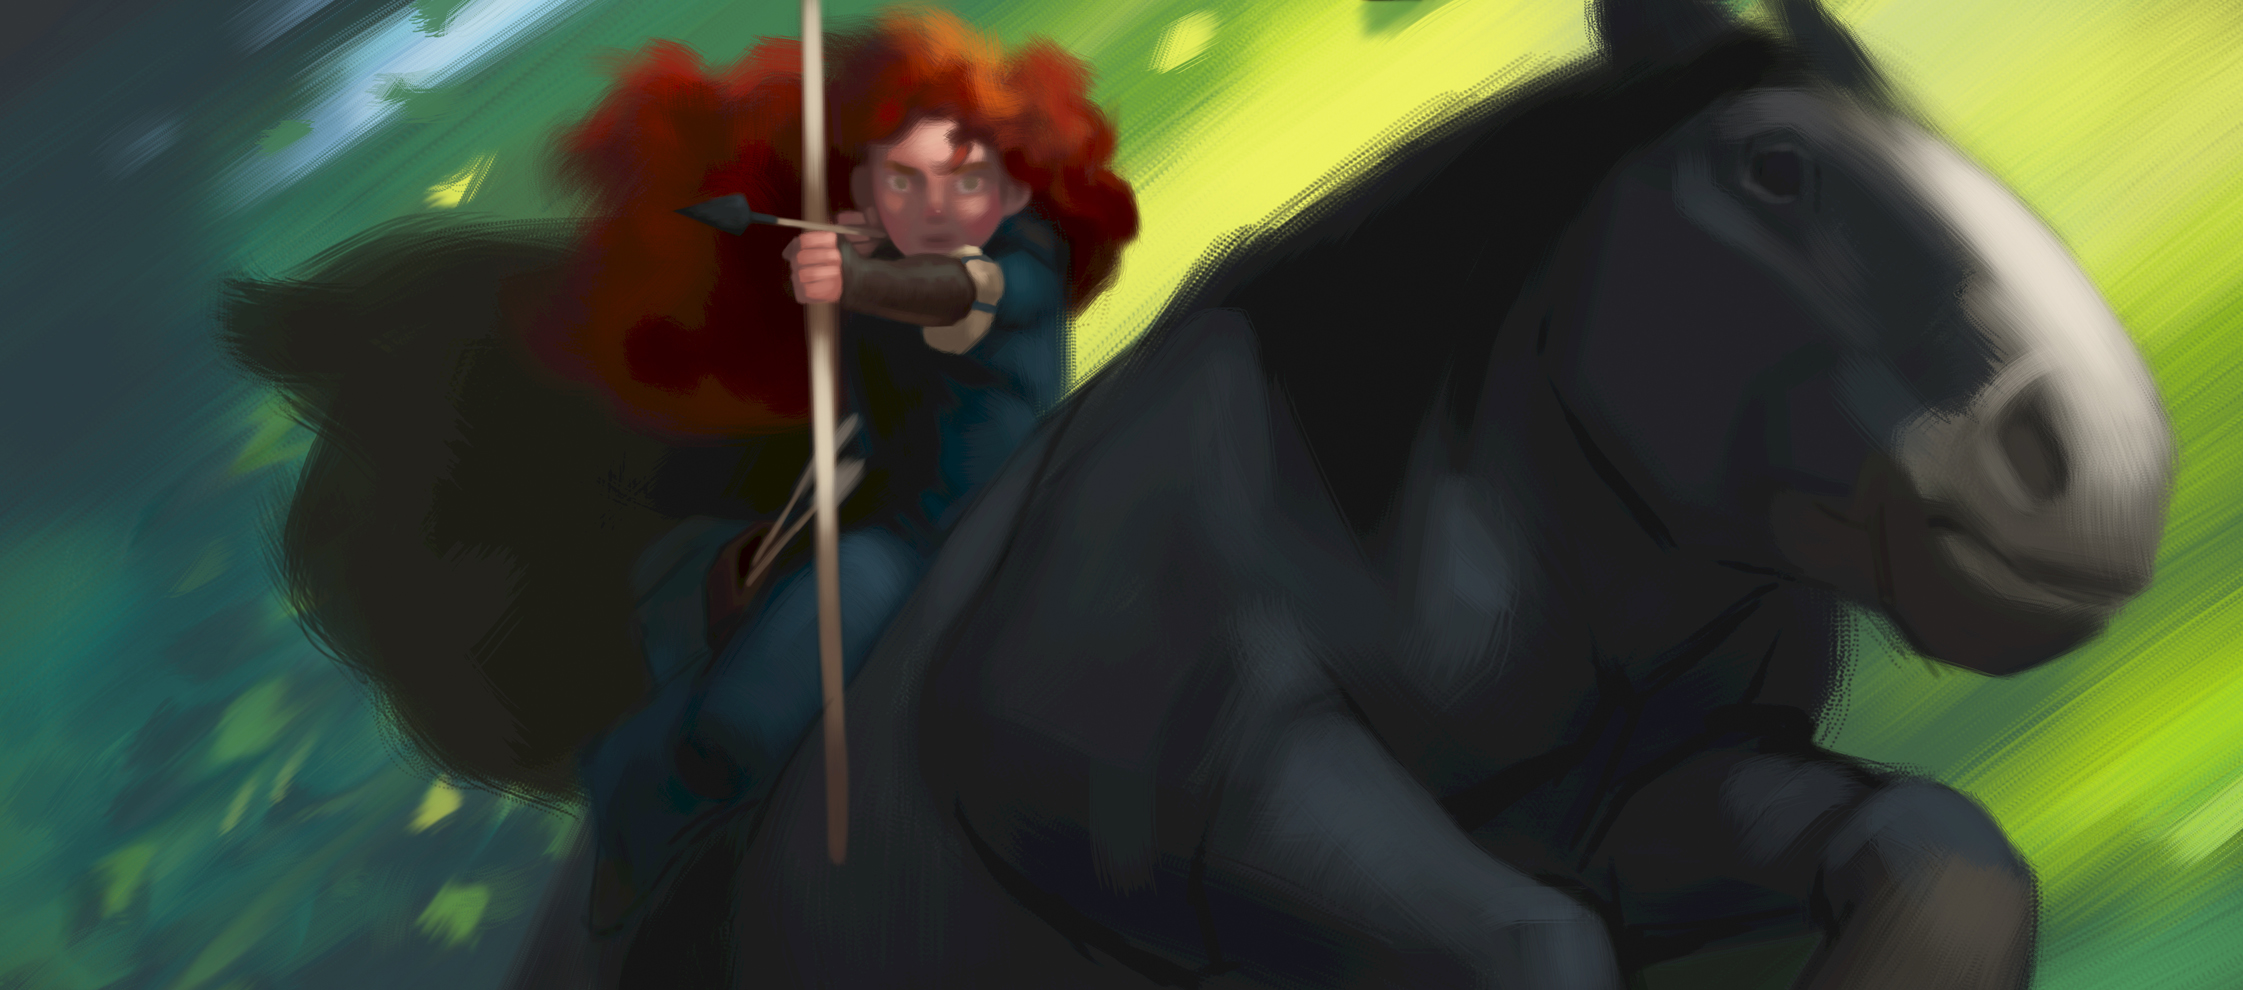 New Concept Art for Disney/Pixar's BRAVE